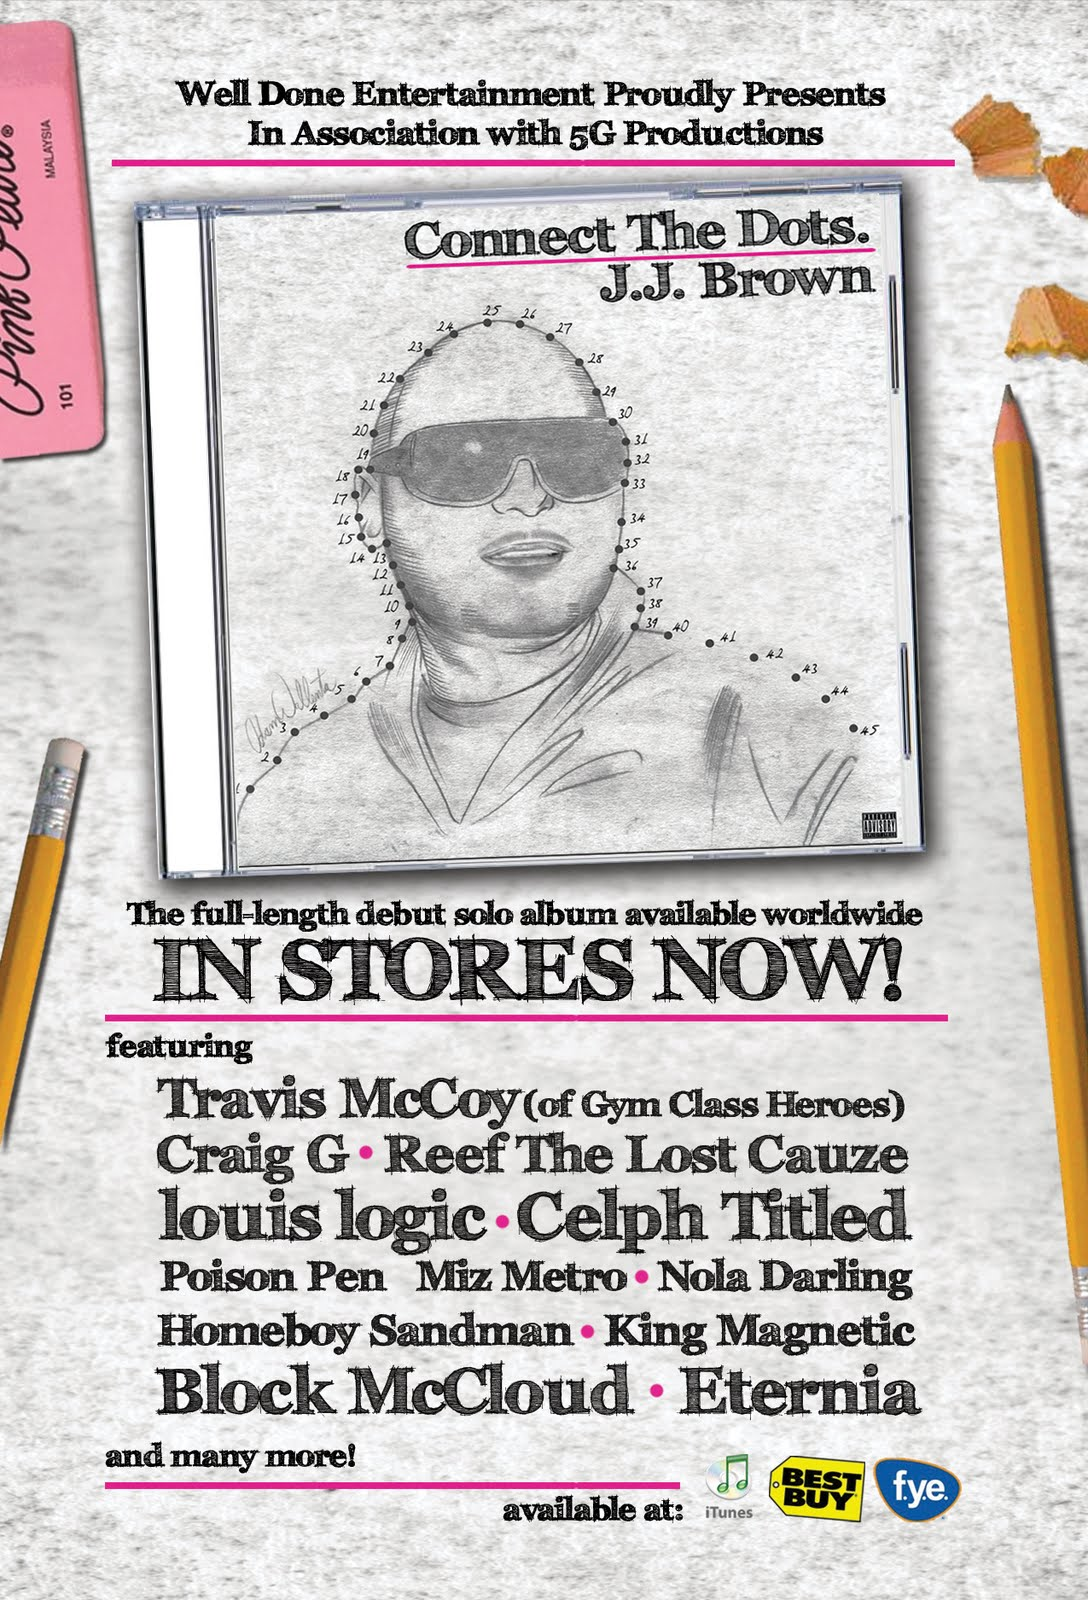 [JJ_BROWN+IN+STORES+NOW.jpg]